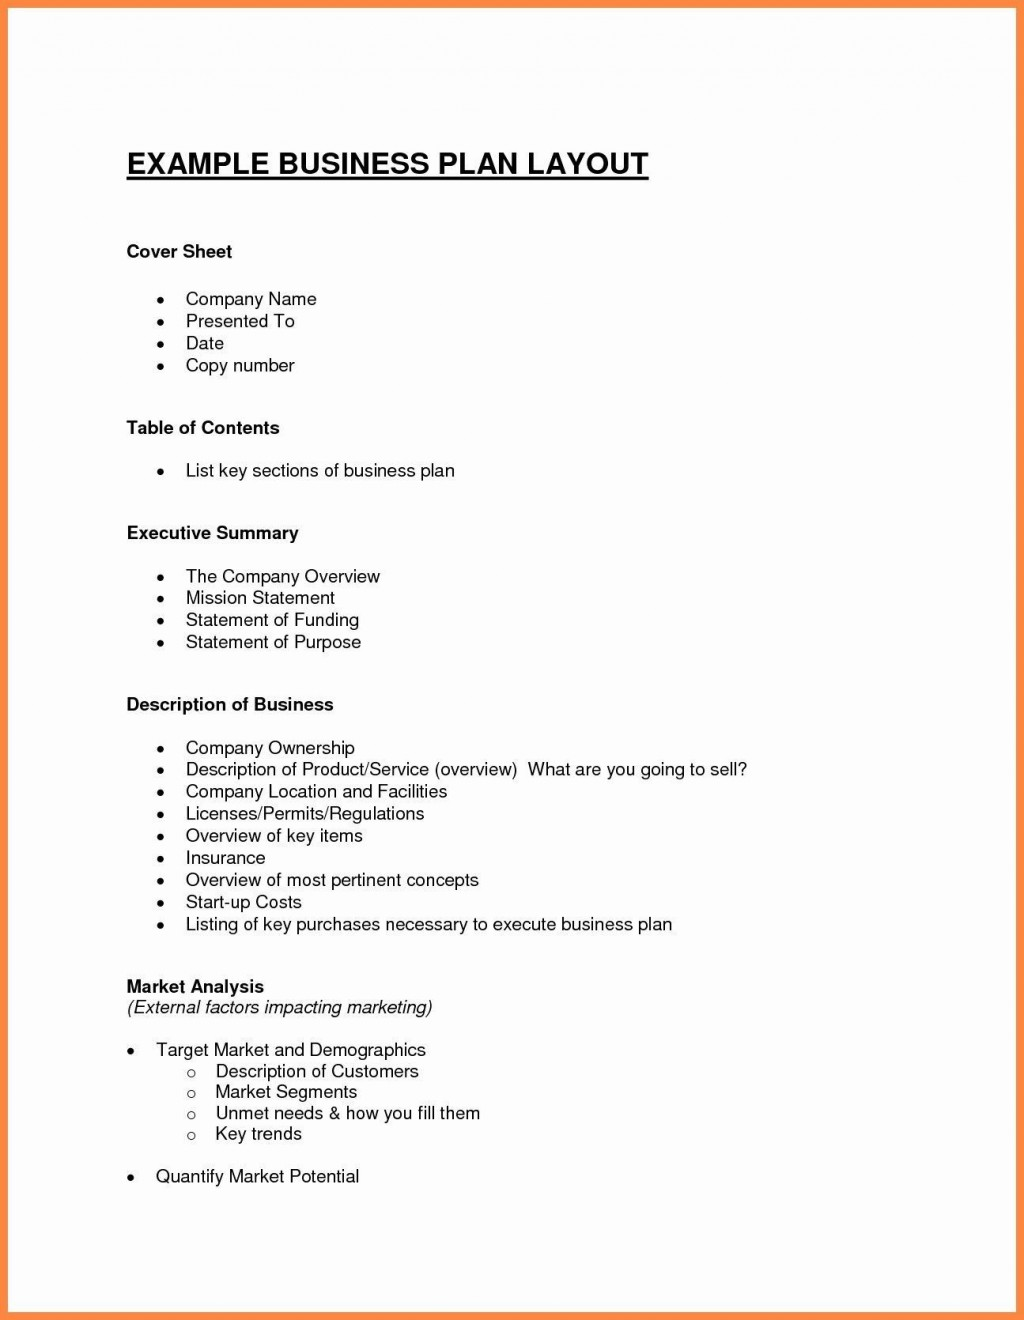 000 Magnificent Word Busines Plan Template Free High Resolution  Restaurant Doc Download SaleLarge